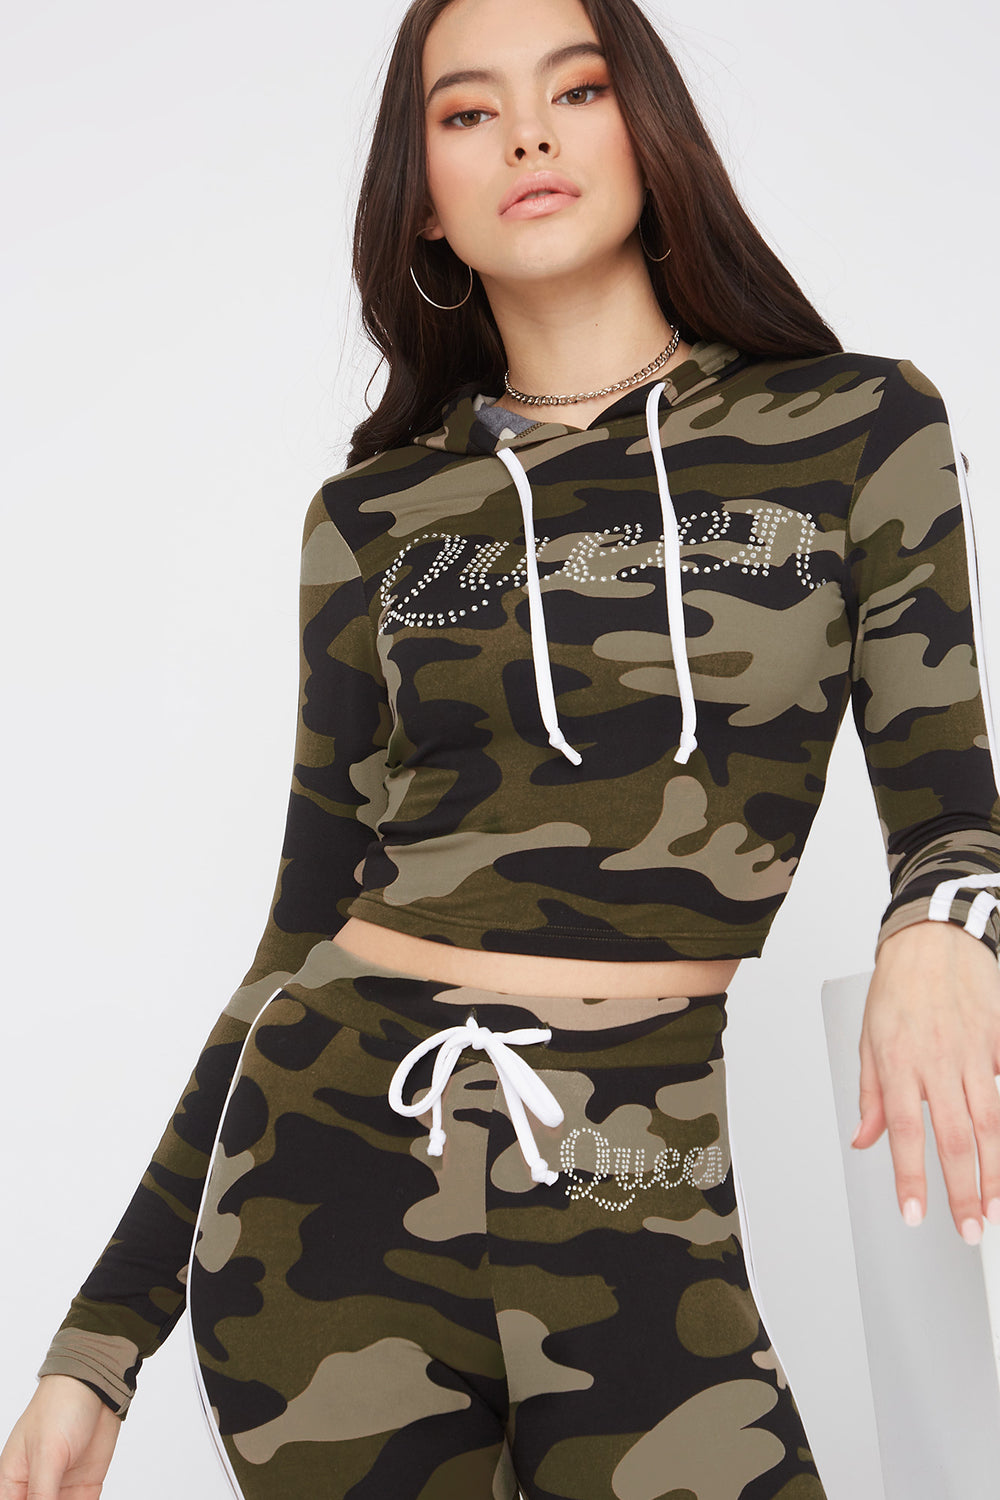 Graphic Rhinestone Hooded Long Sleeve Camouflage